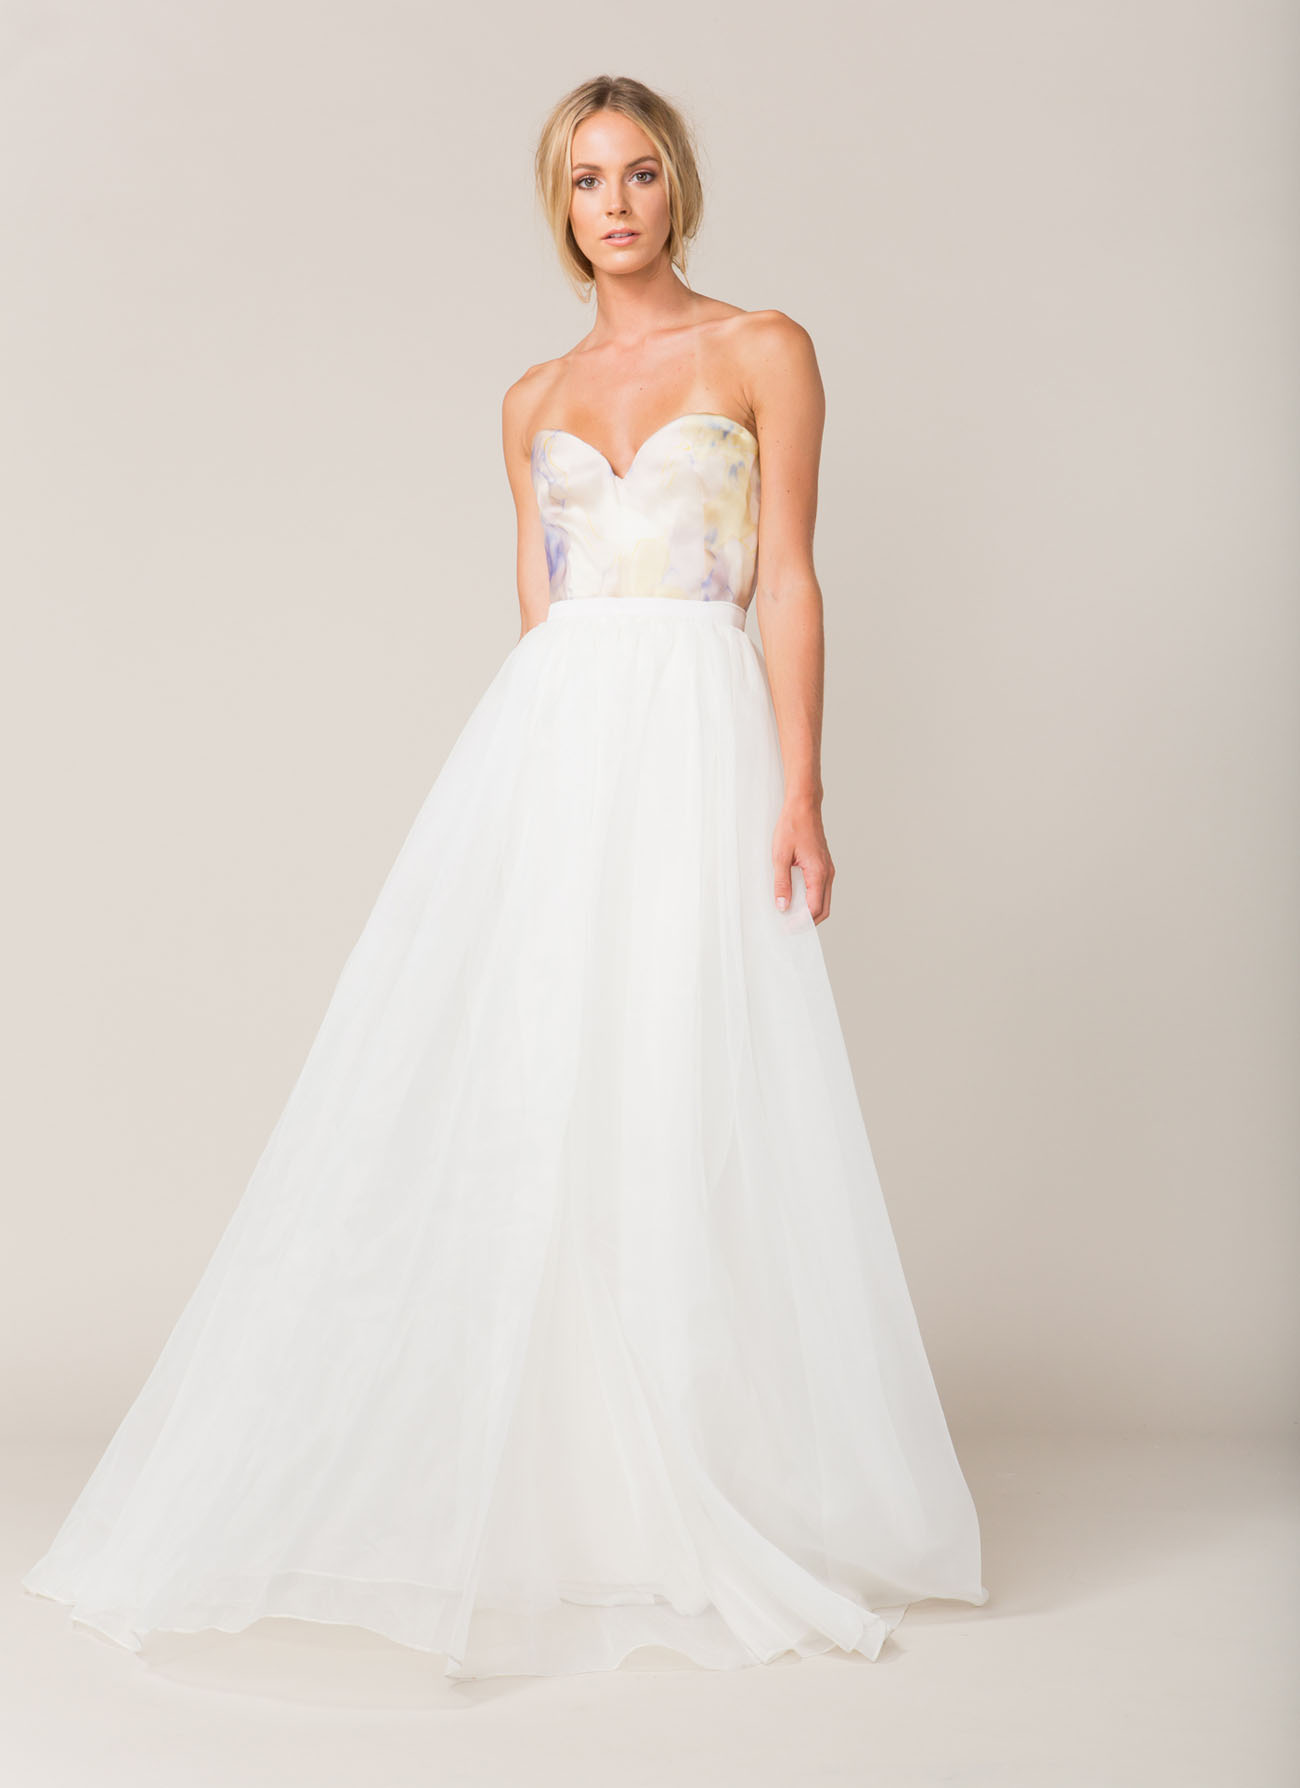 Preowned Wedding Dresses Los Angeles 54 Nice Sarah Seven Collection